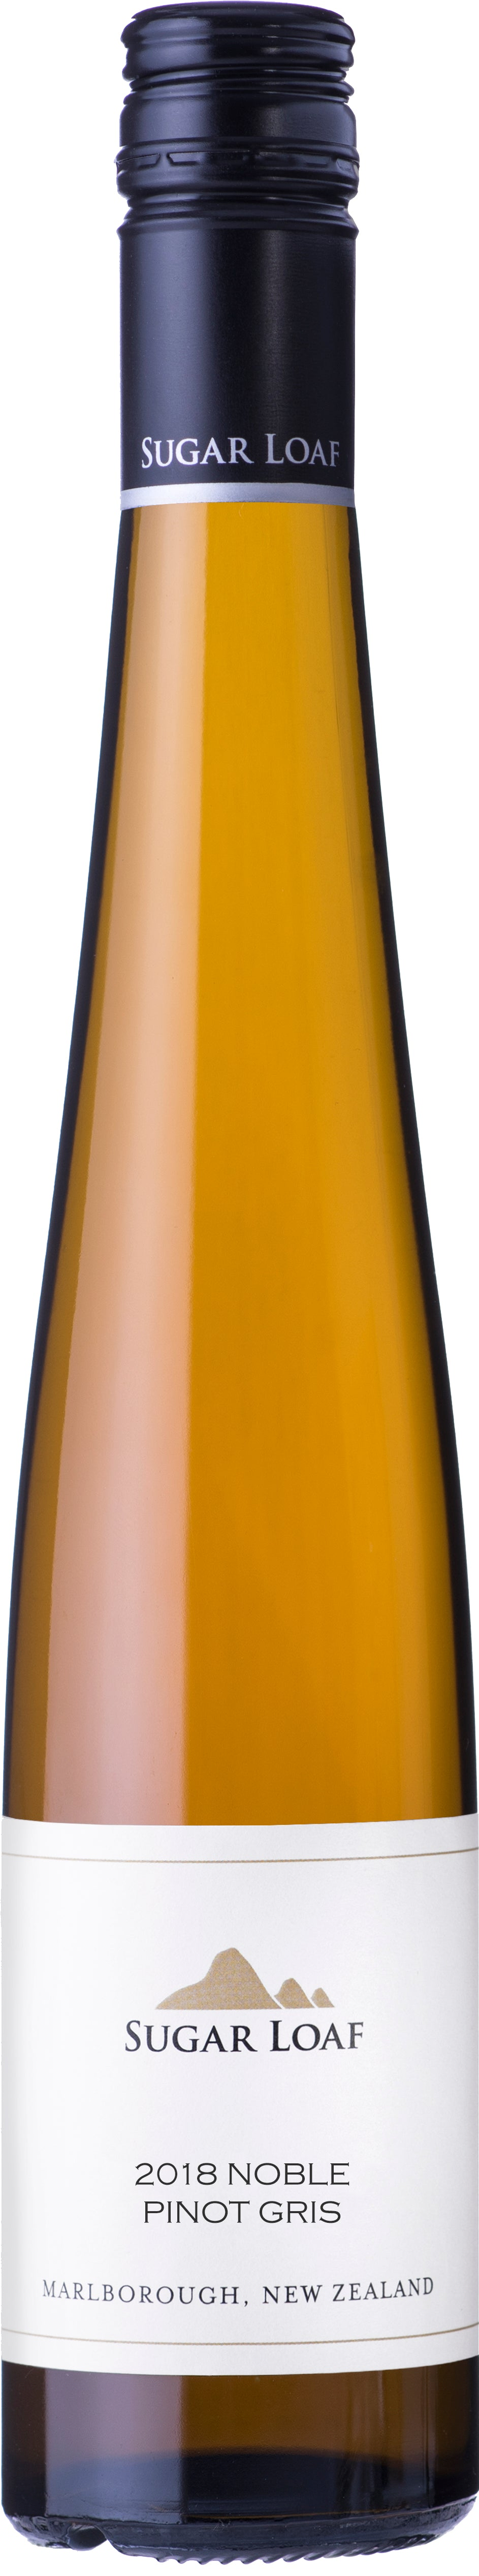 'Noble' Pinot Gris 2018